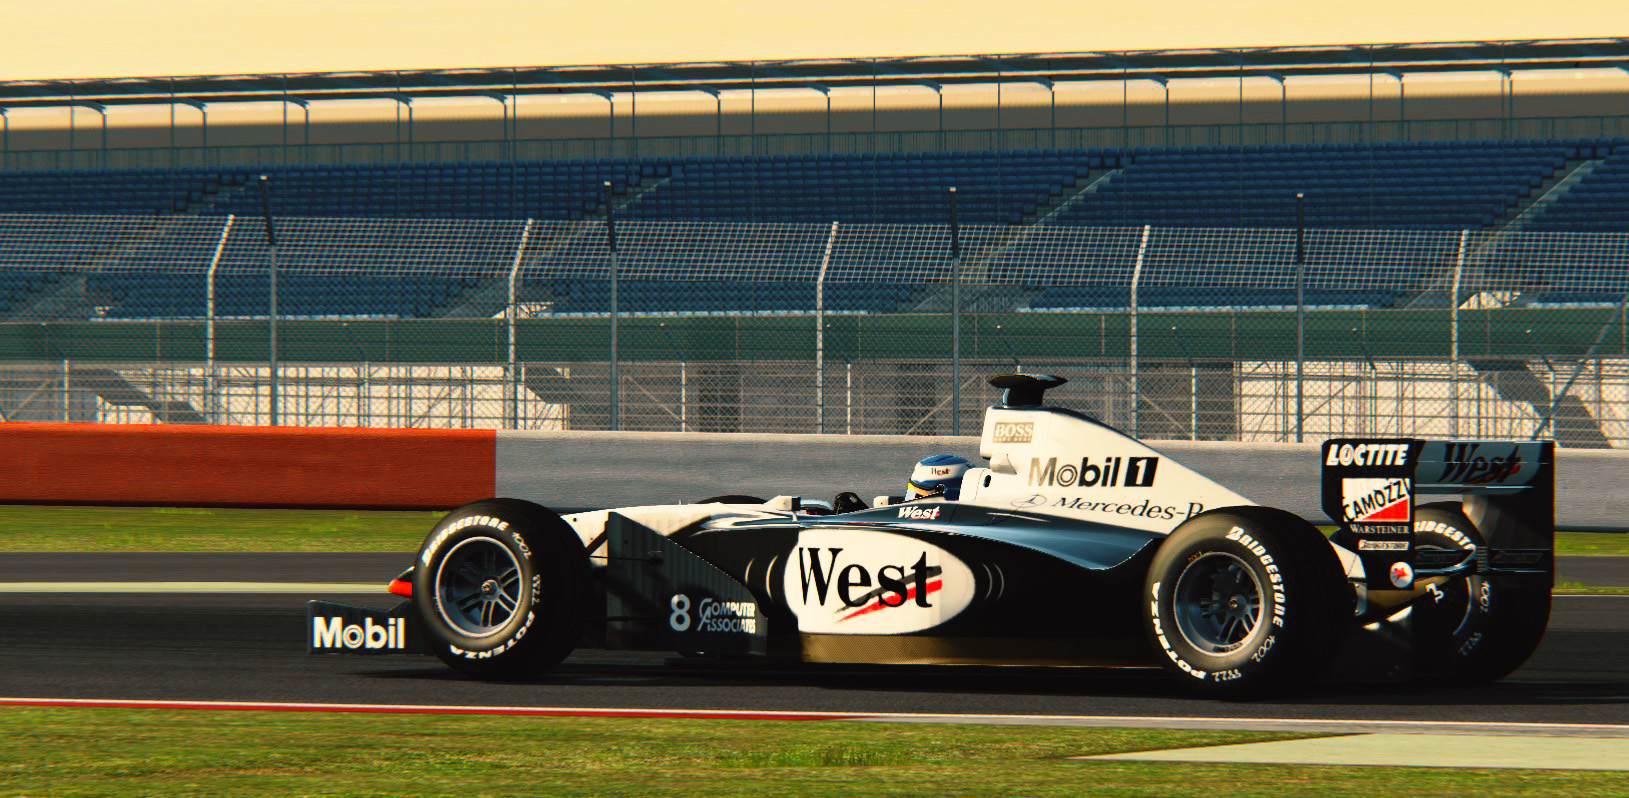 McLaren MP4-13, dusk to dawn